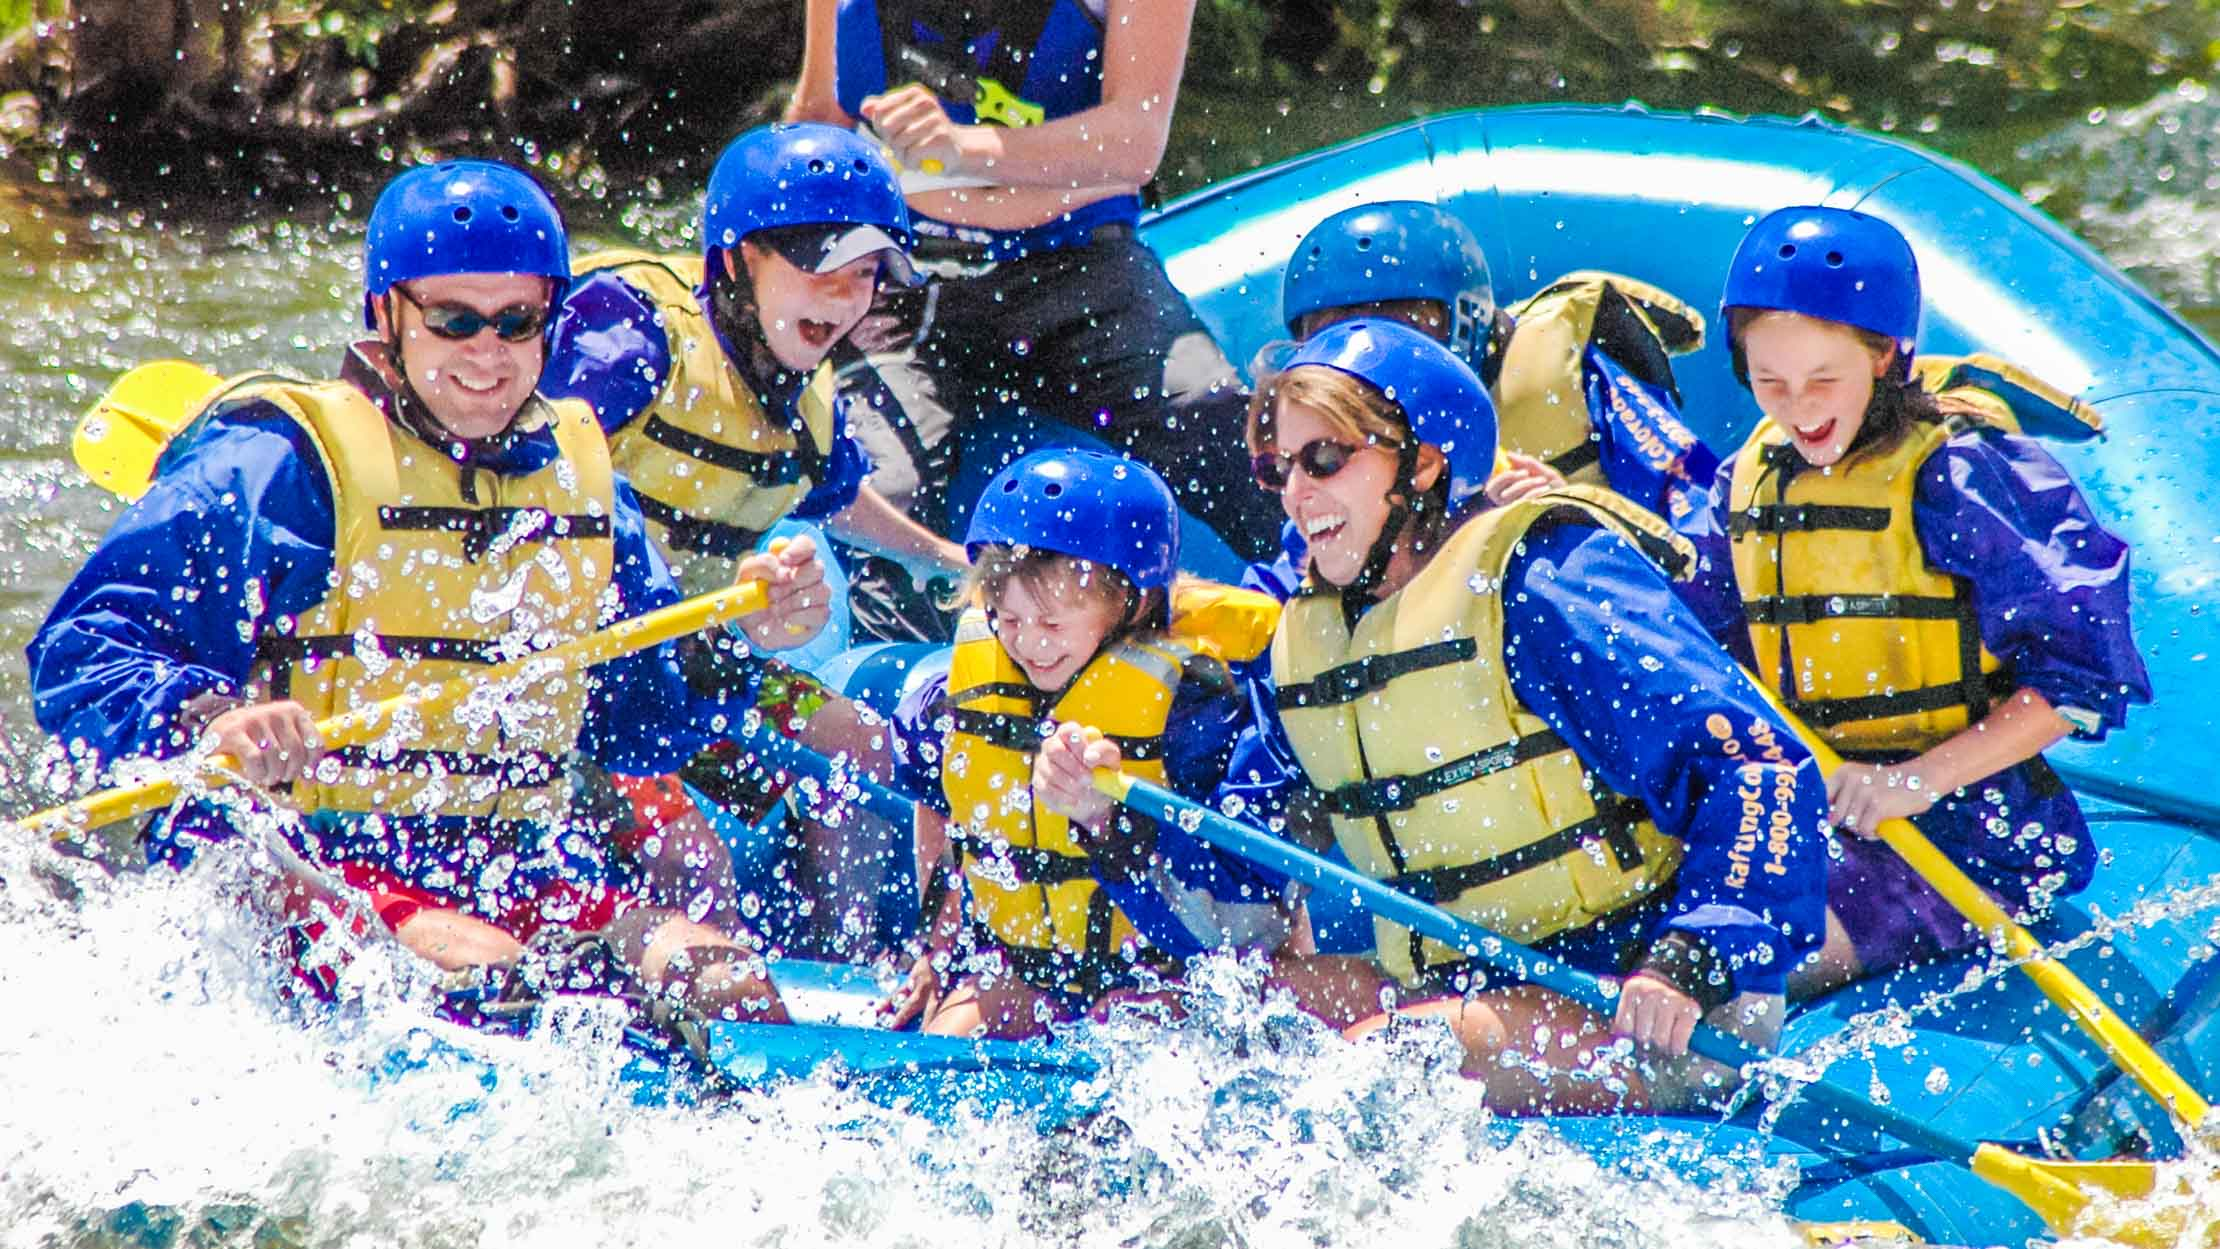 Family rafting through white water